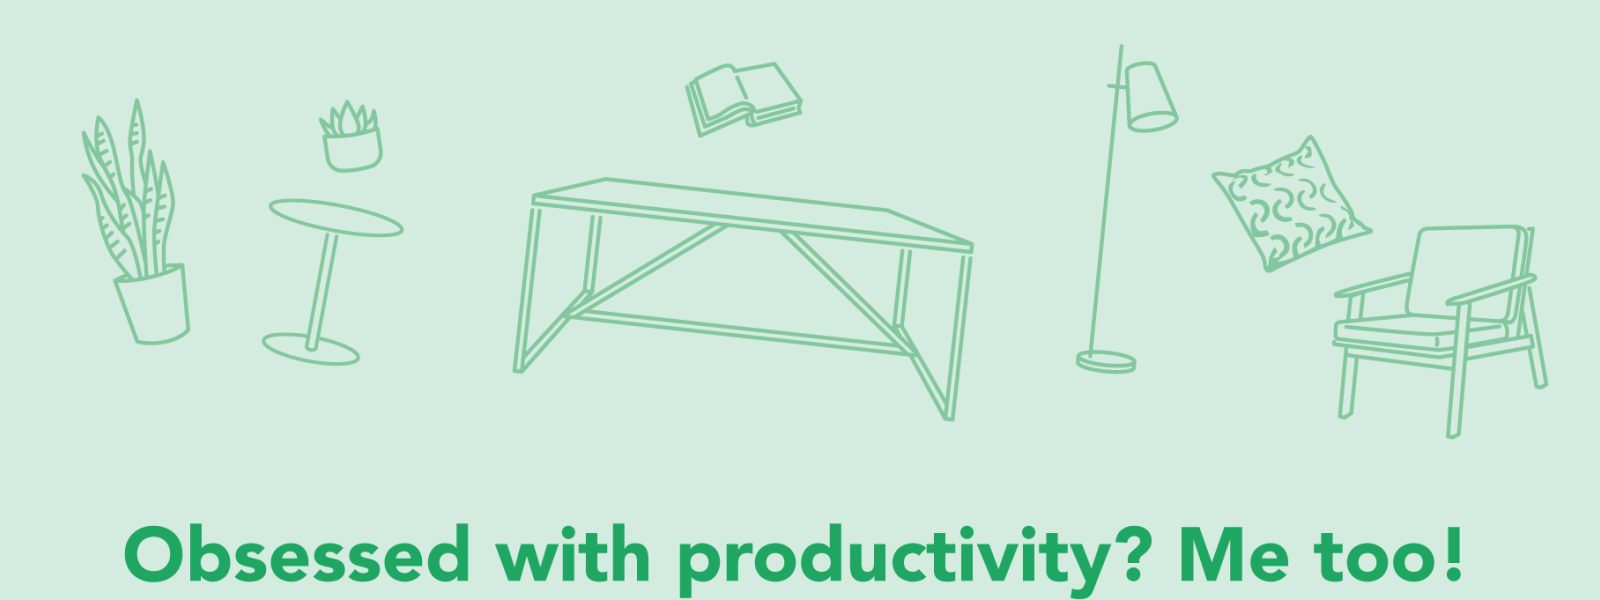 Obsessed with productivity? Me too! by Amy Woodside